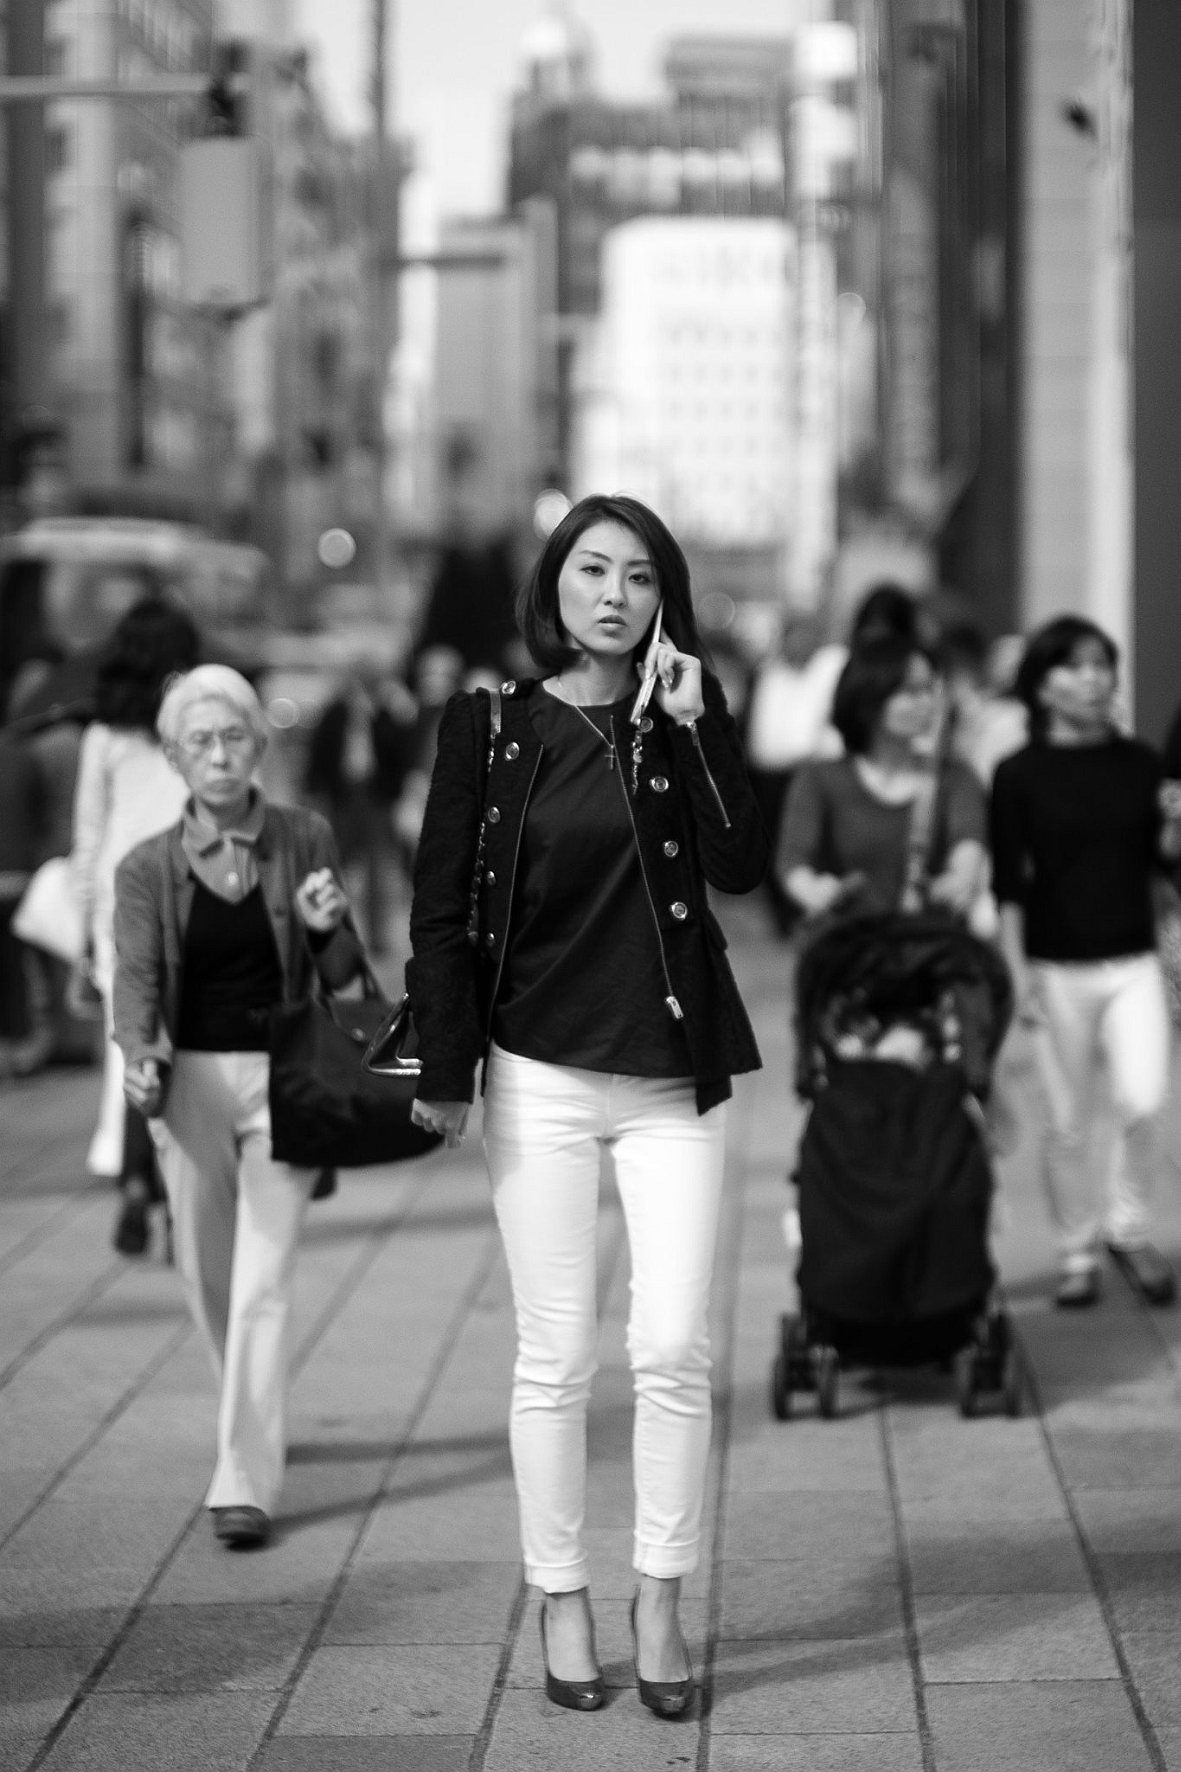 © Mark Strachan_Shopper Ginza Japan 2014 NOCTI with M240